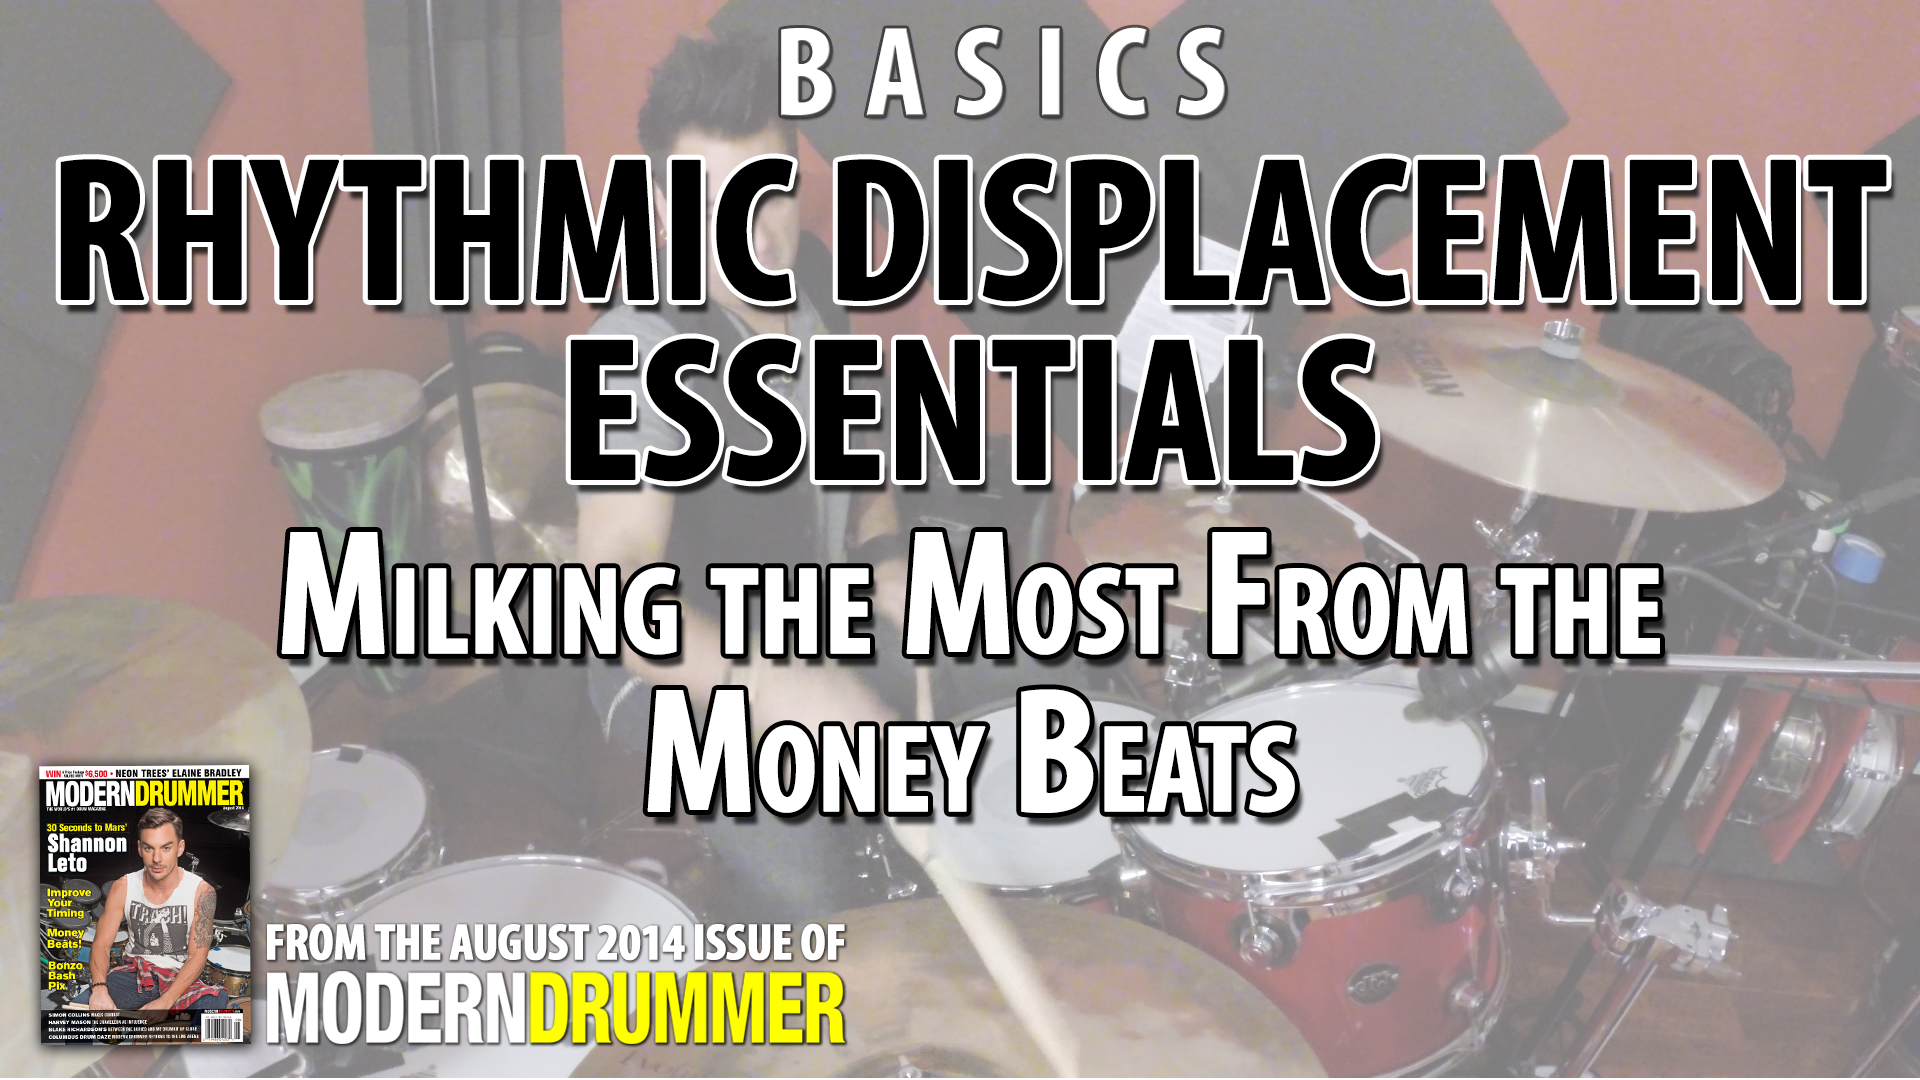 Rhythmic Displacement Essentials